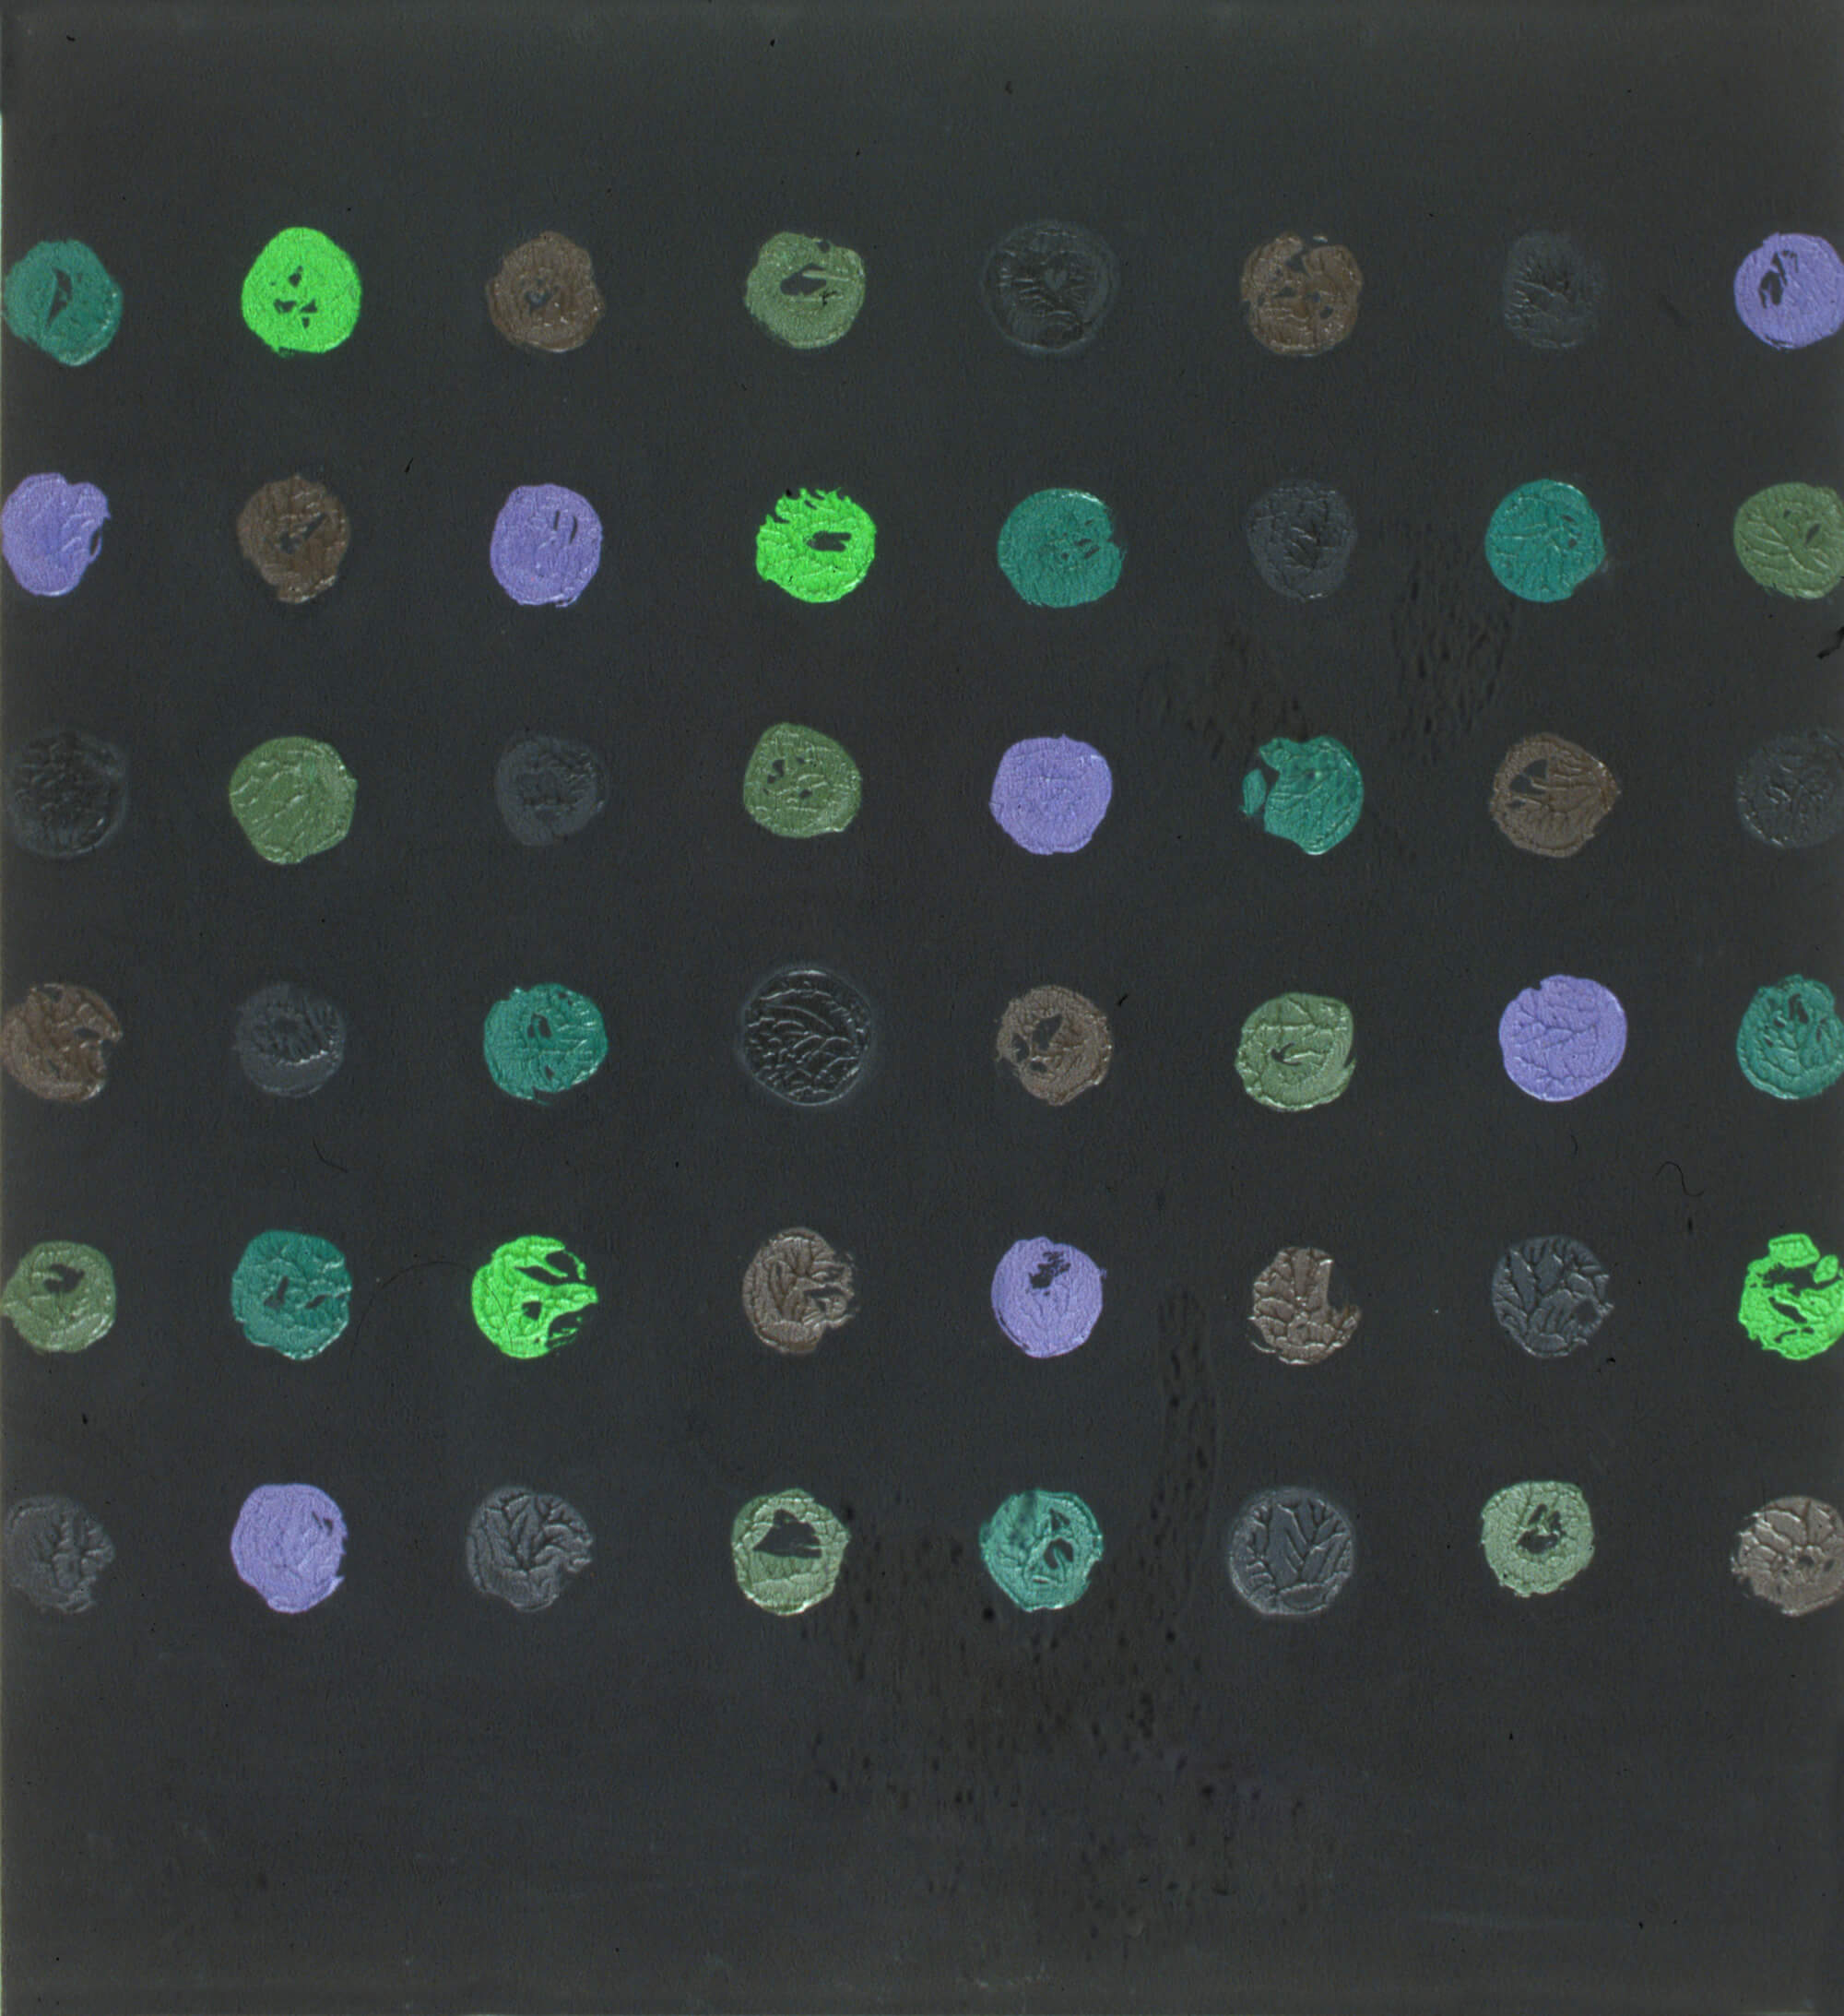 No title, 122 x 112 cm. Oil tempera on aluminum sheet, 2002